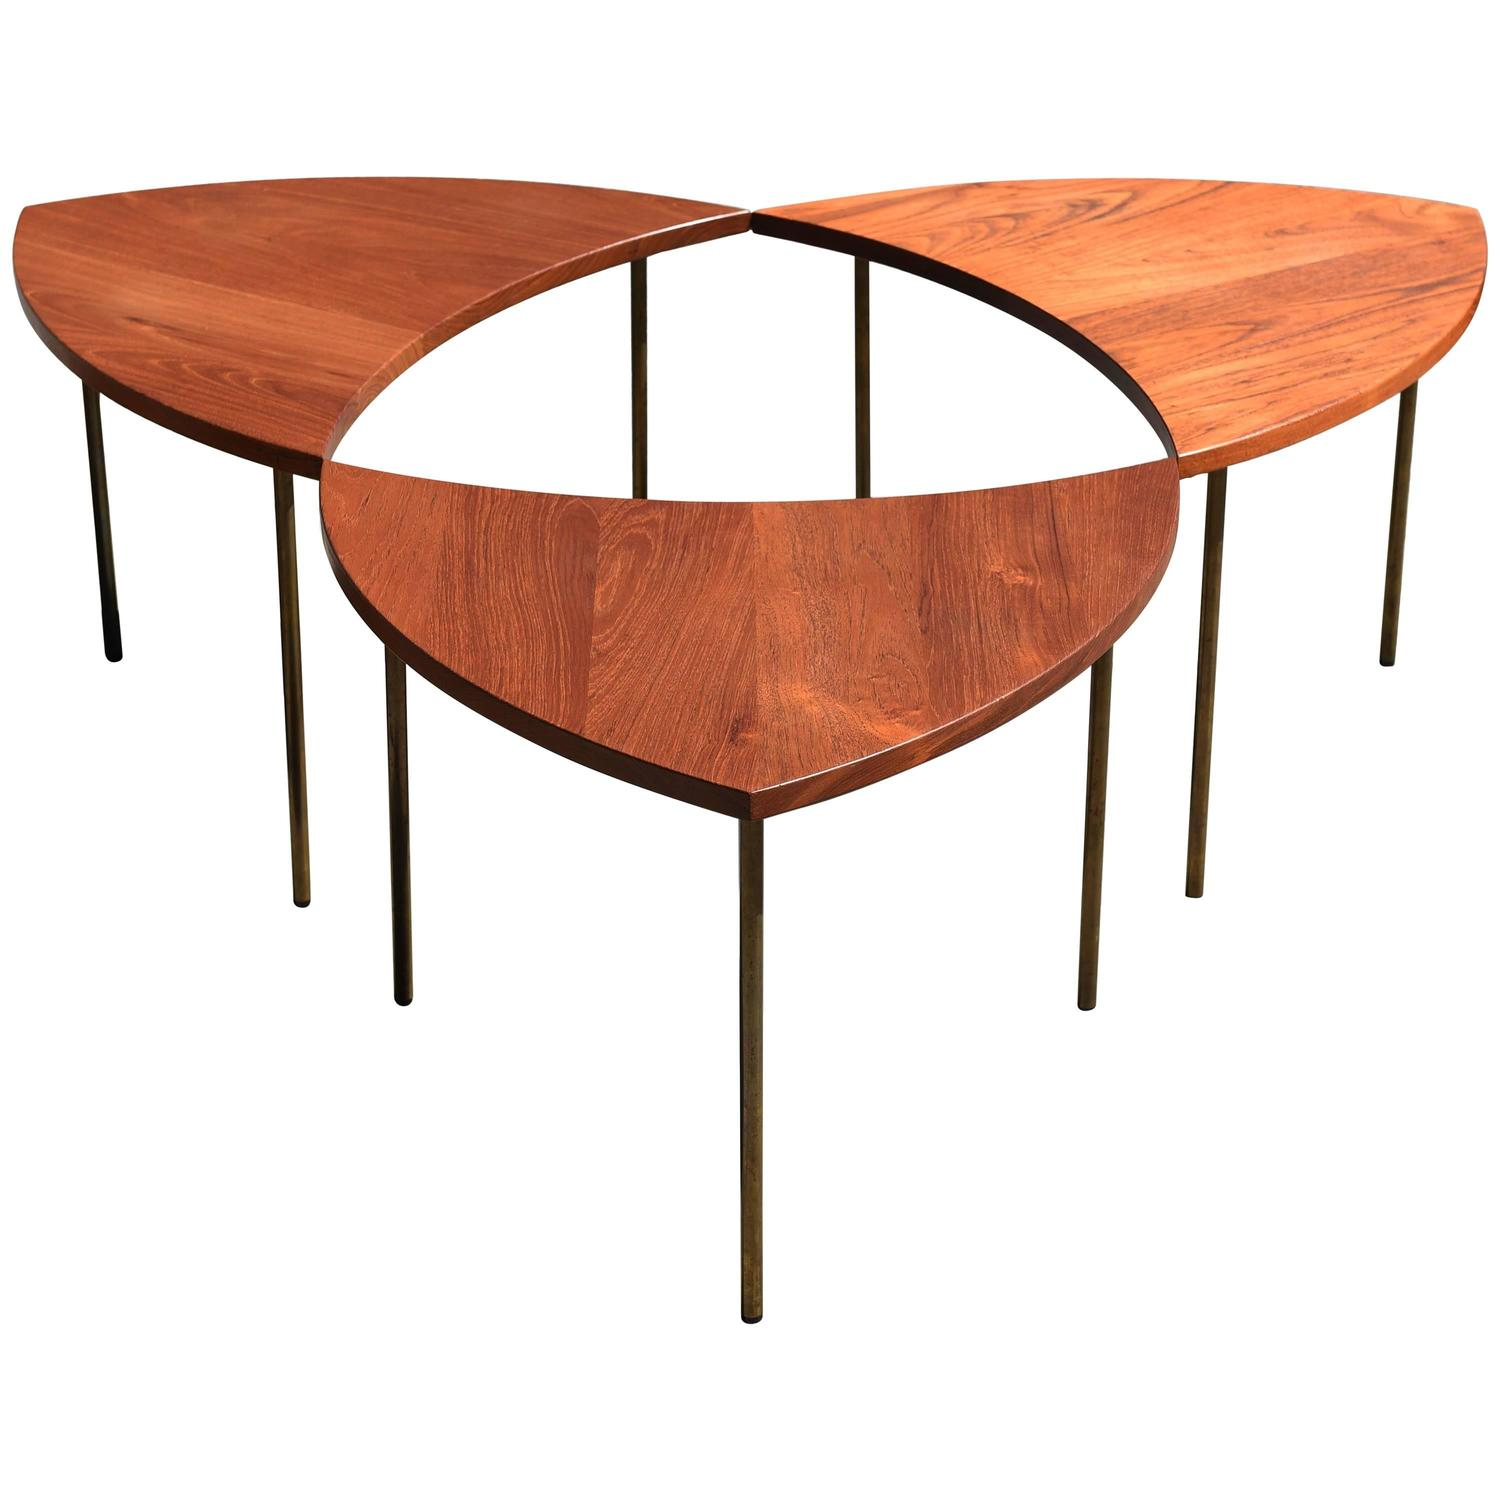 Peter Hvidt Furniture Chairs Tables & More 72 For Sale at 1stdibs